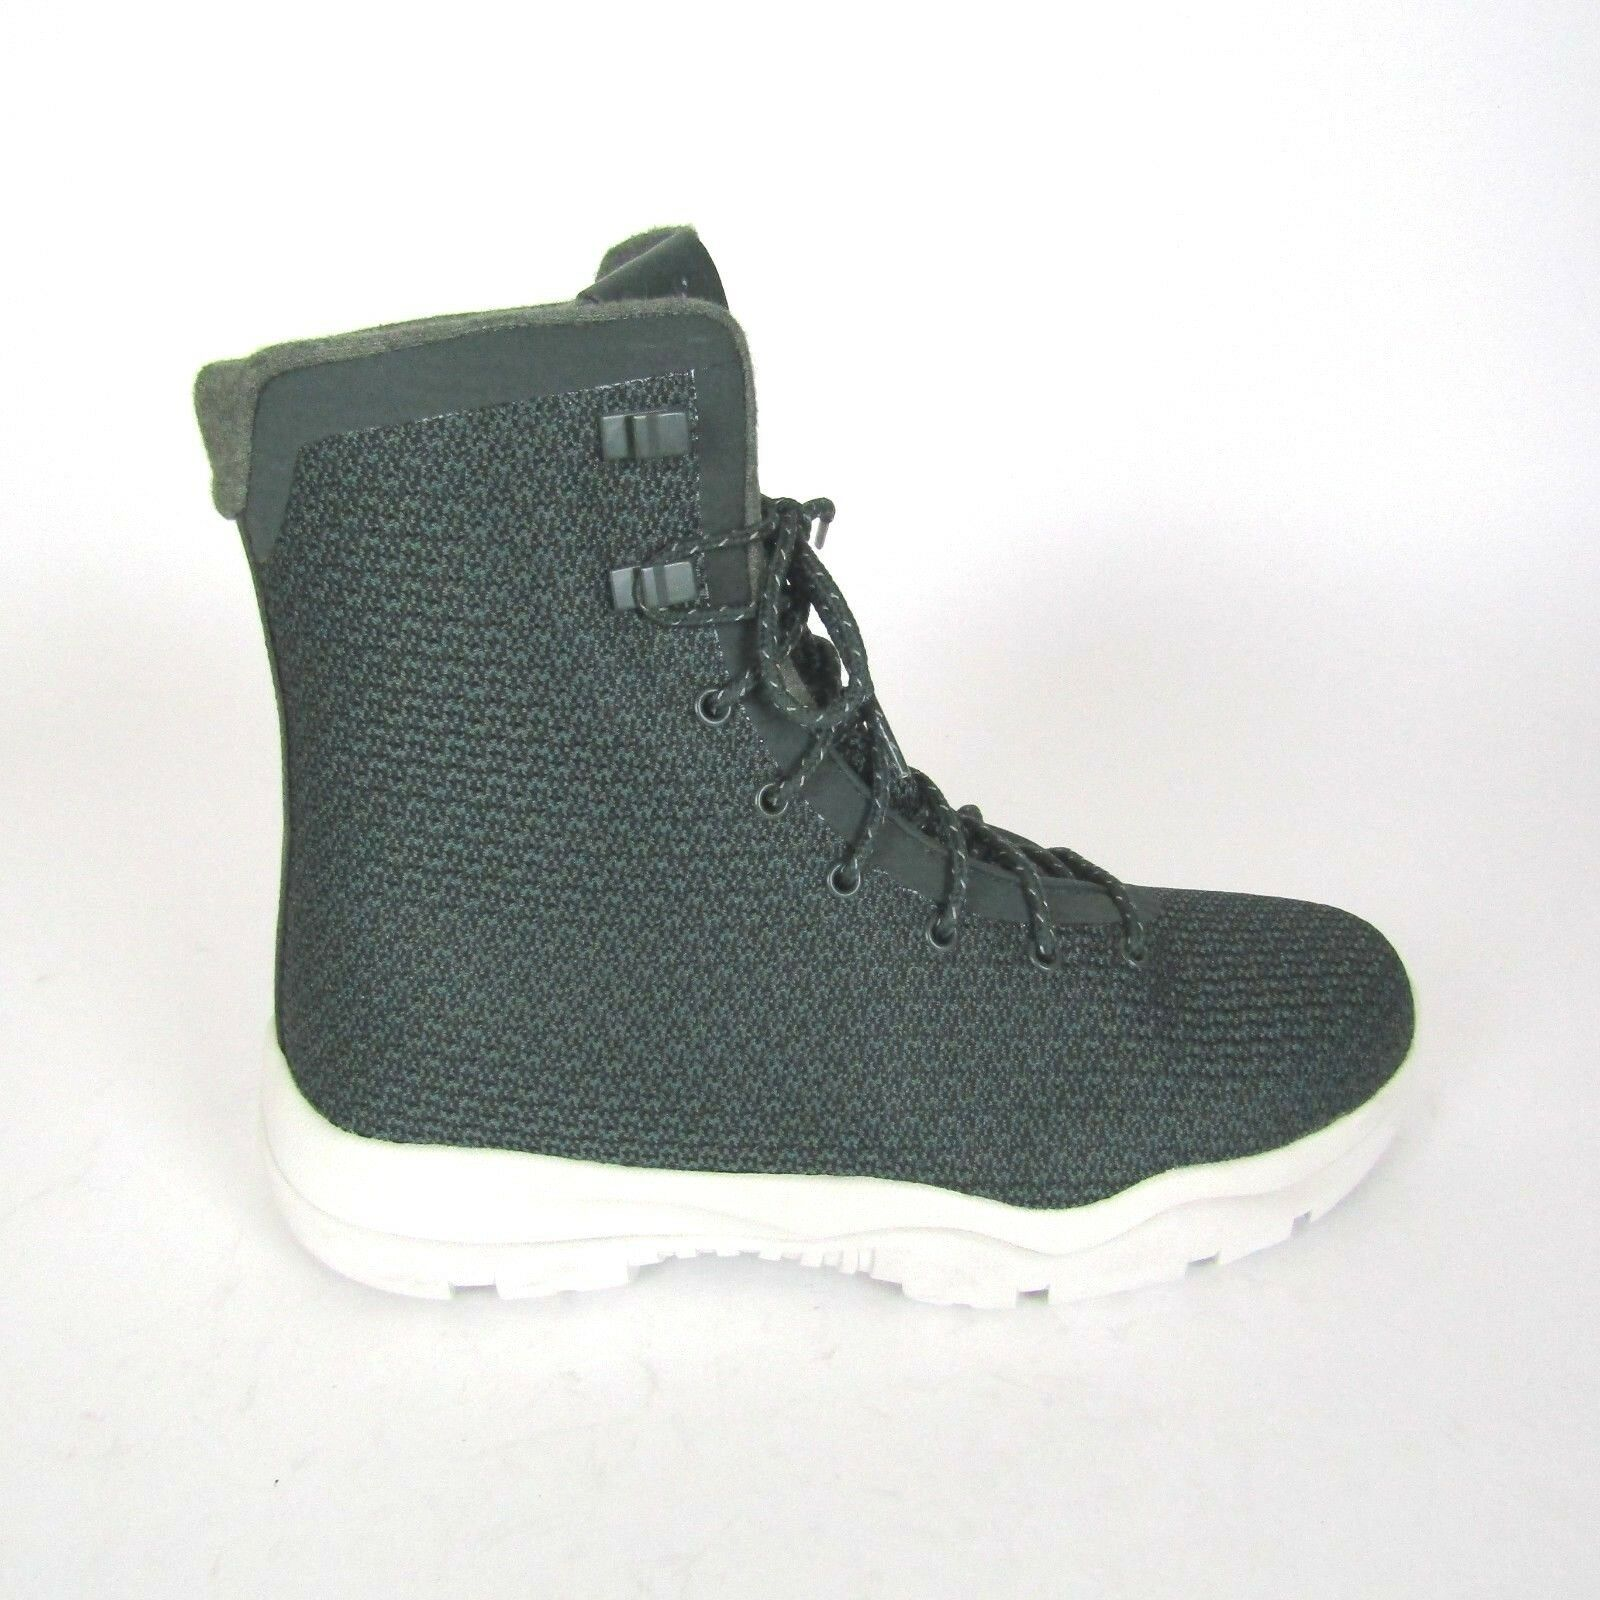 7938a5229523 NEW Nike Air Jordan Future Winter Boots   and 41 similar items